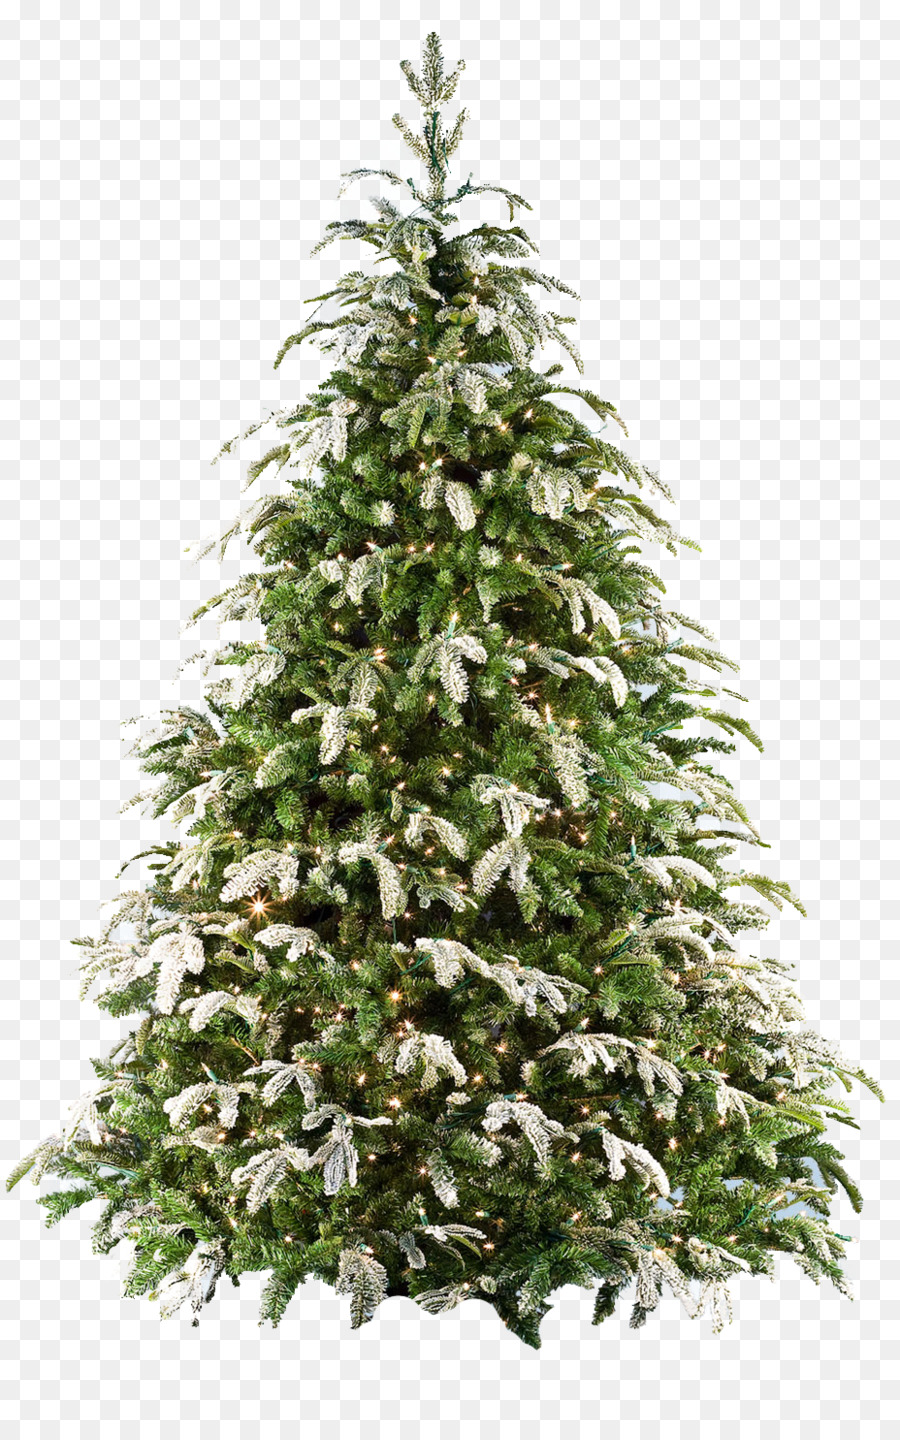 Christmas Tree Cartoontransparent png image & clipart free download.